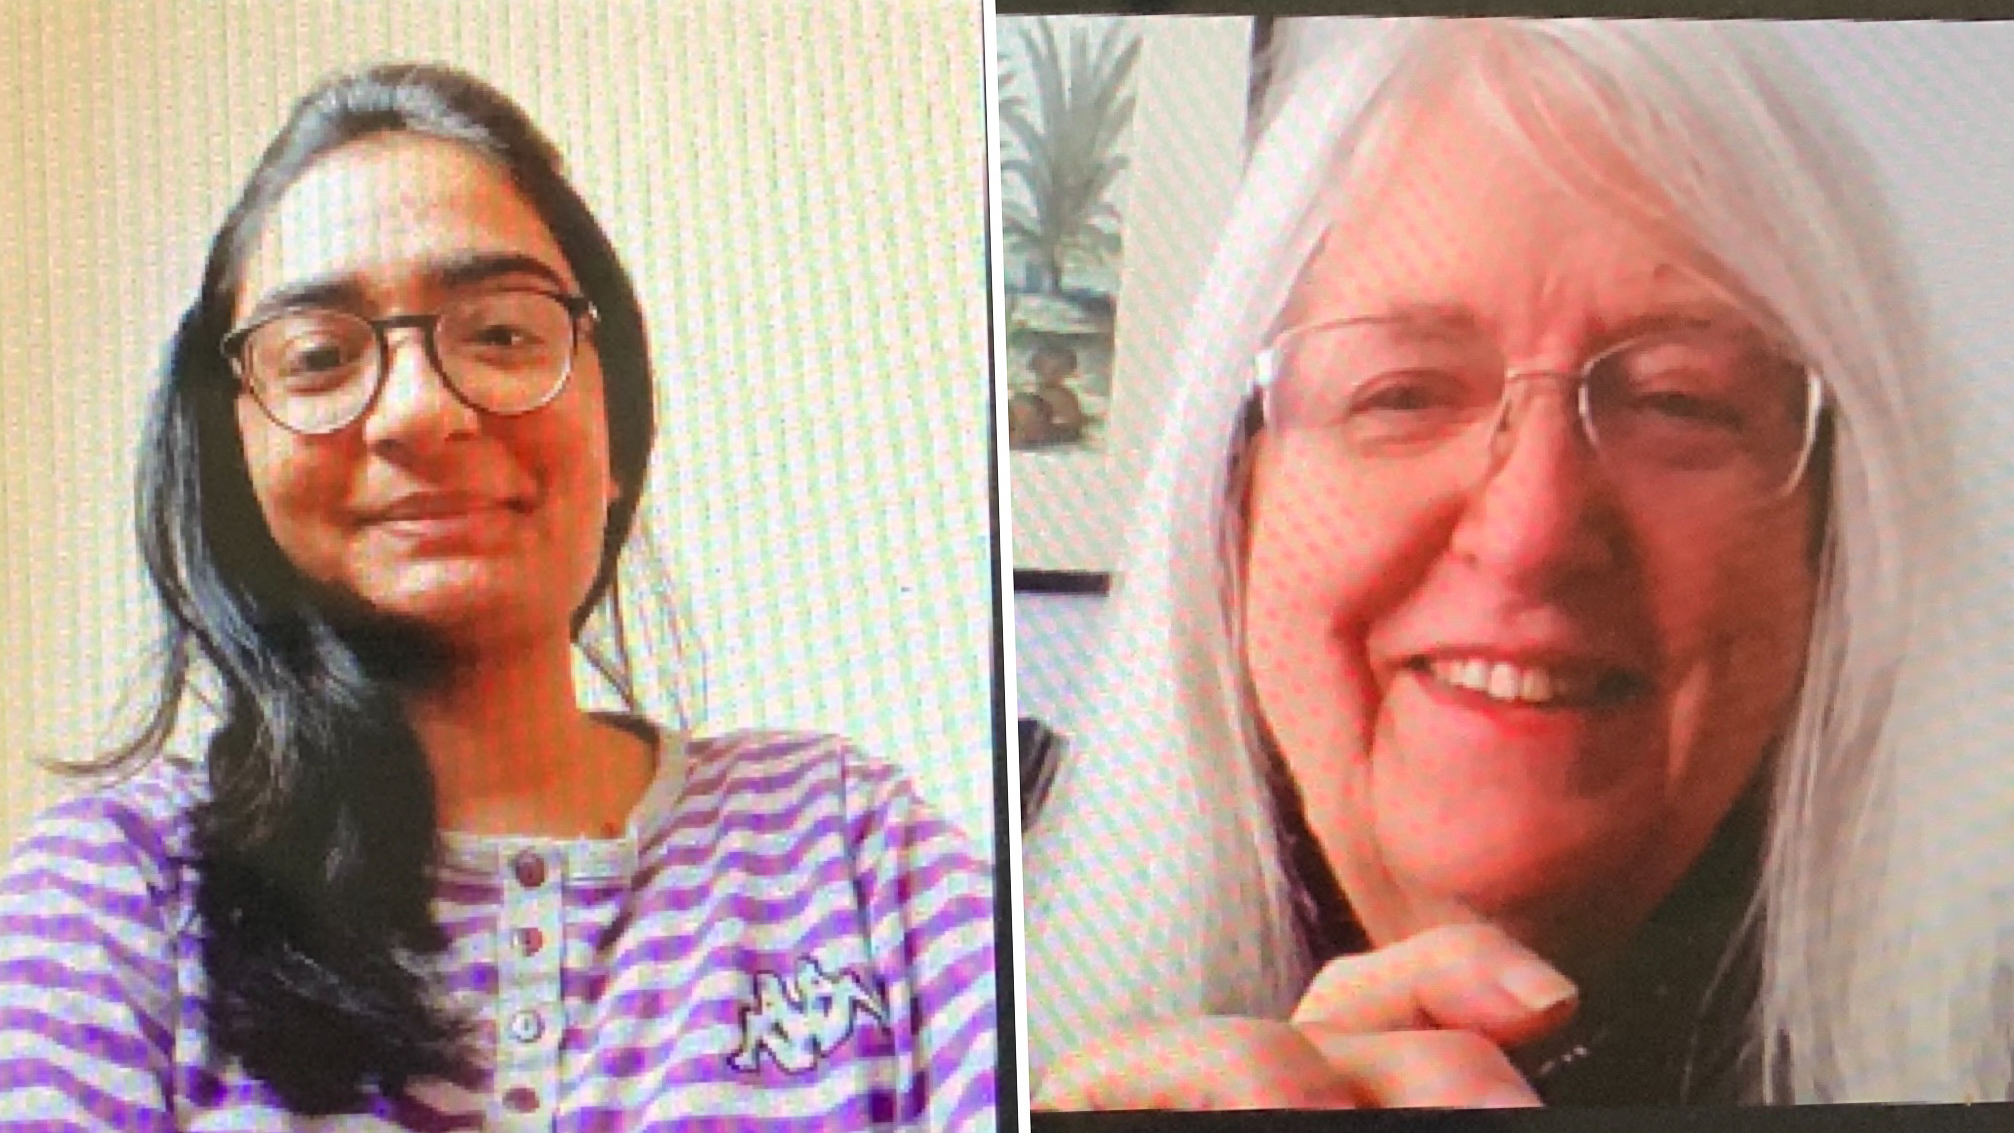 Naisargee Patel, senior biological sciences major, and Priscilla Grew, director emerita of the University of Nebraska State Museum, were paired through the Rotary Club 14 International Student Mentoring Program based on mutual interests and ties to India.